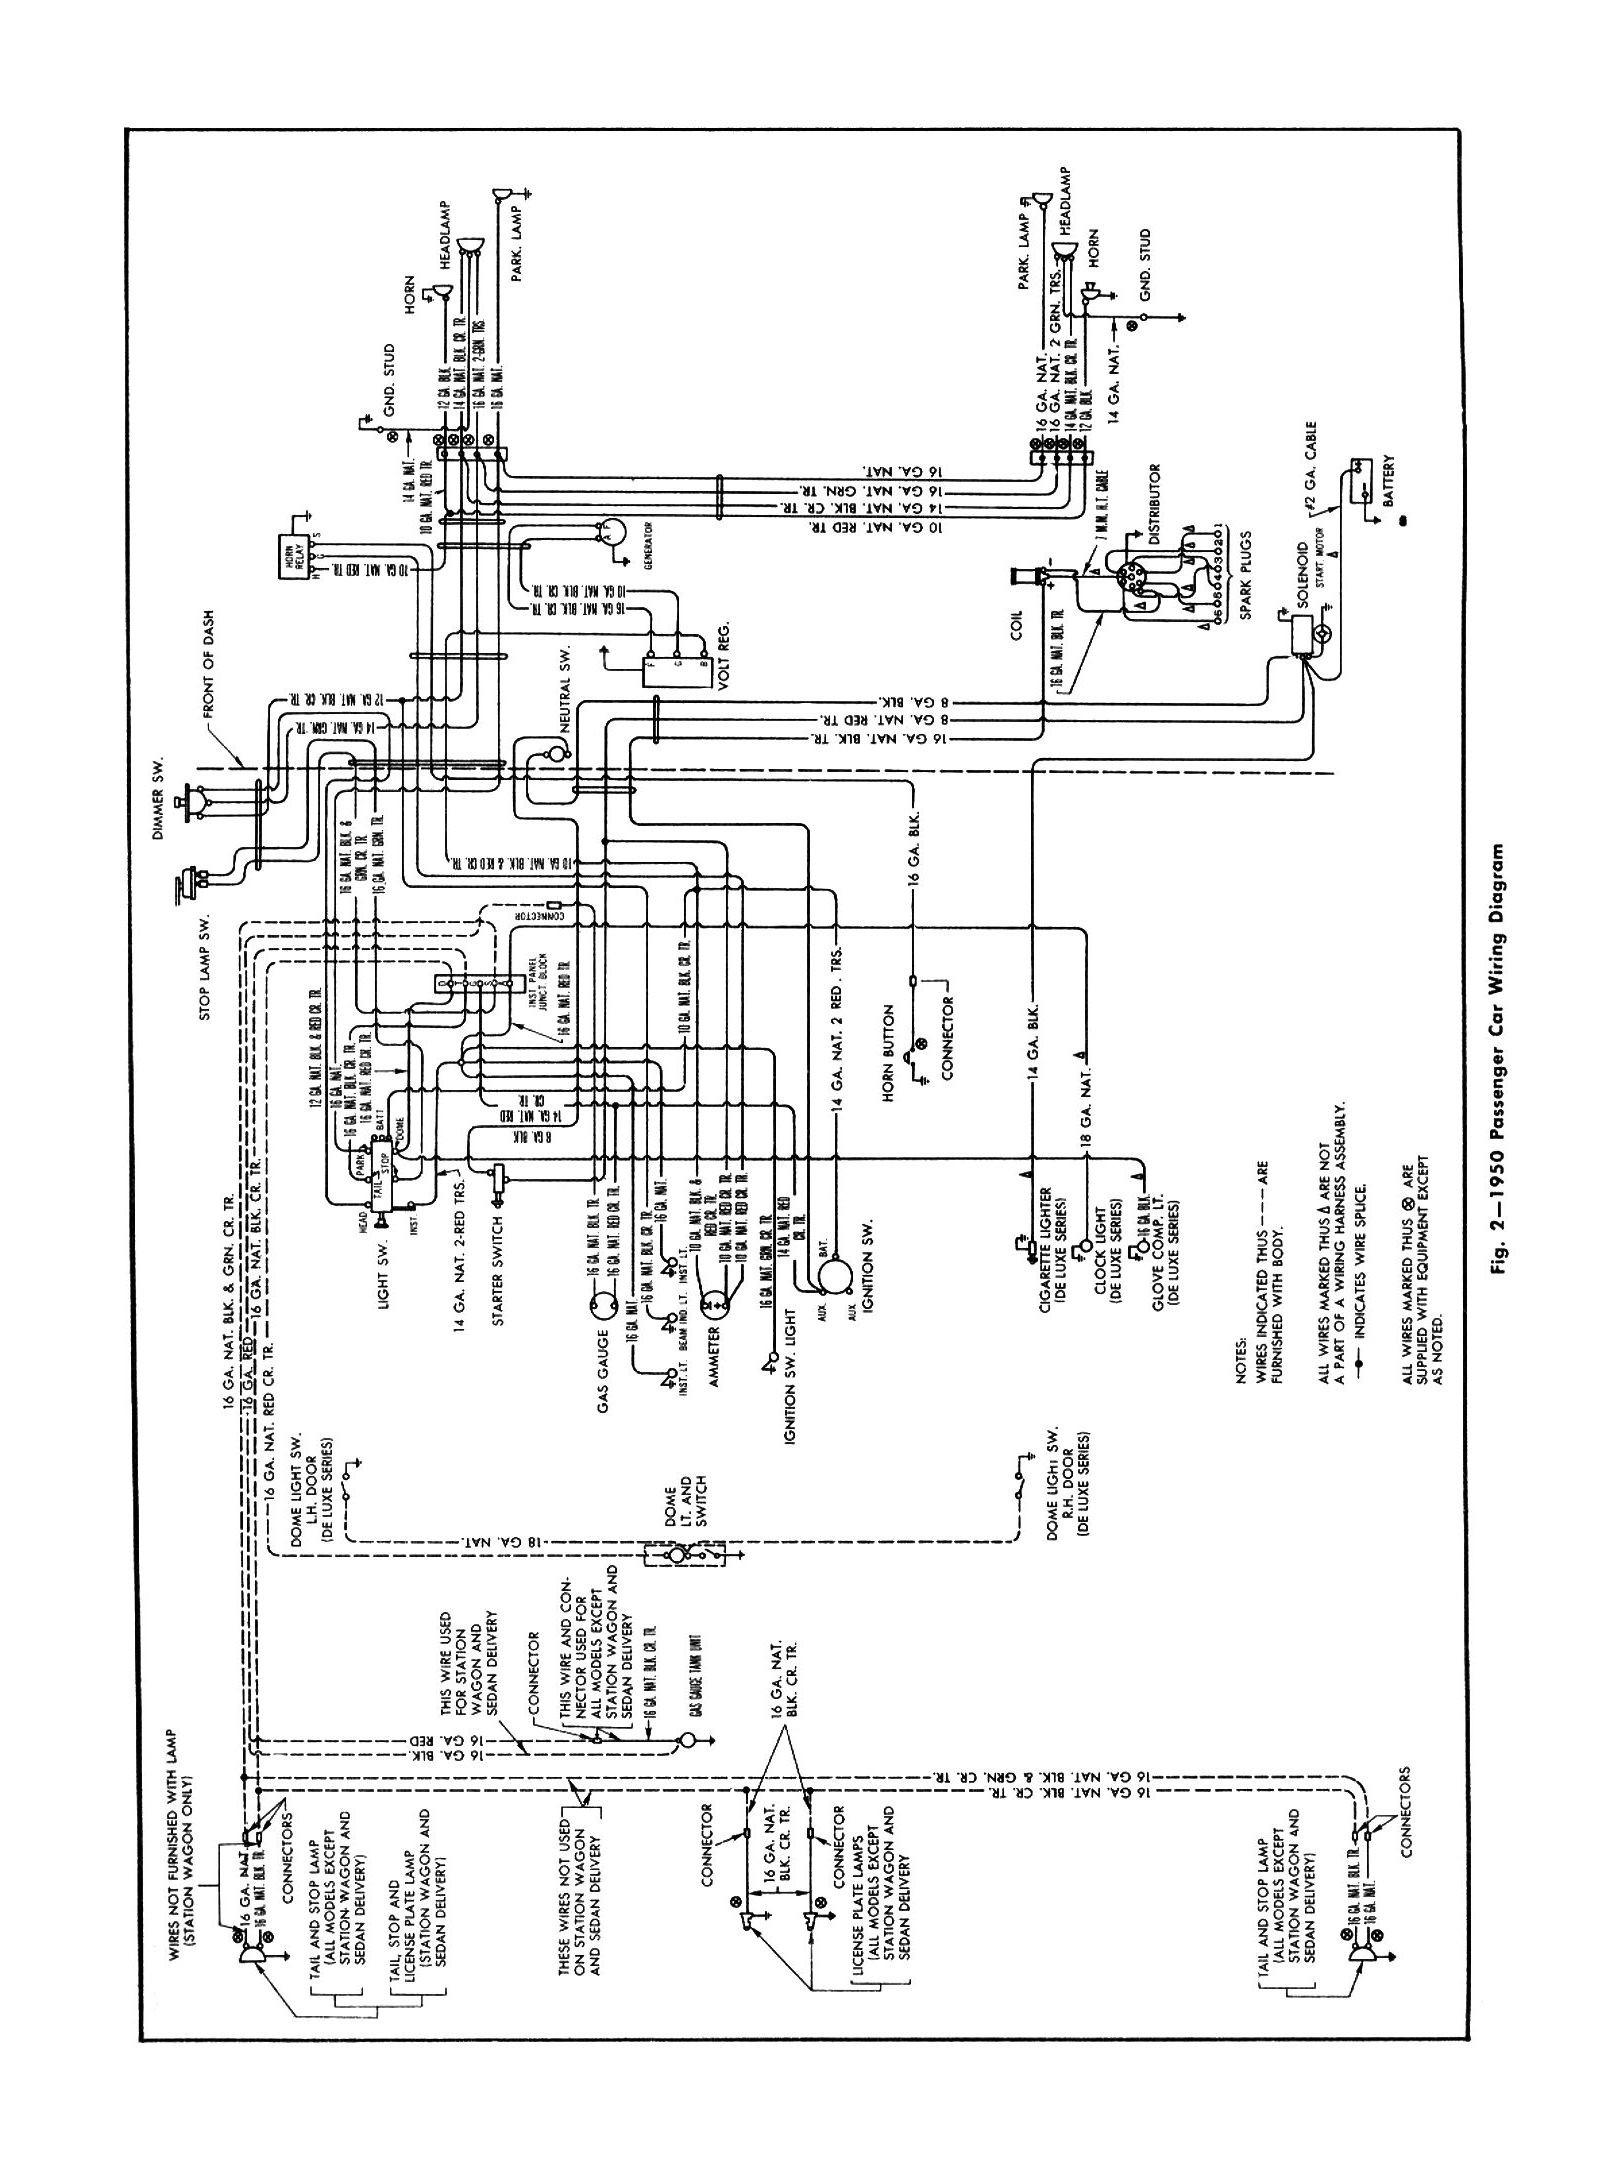 General Wiring Diagrams Wiring Diagram Schematics Basic Electrical  Schematic Diagrams General Wiring Diagram